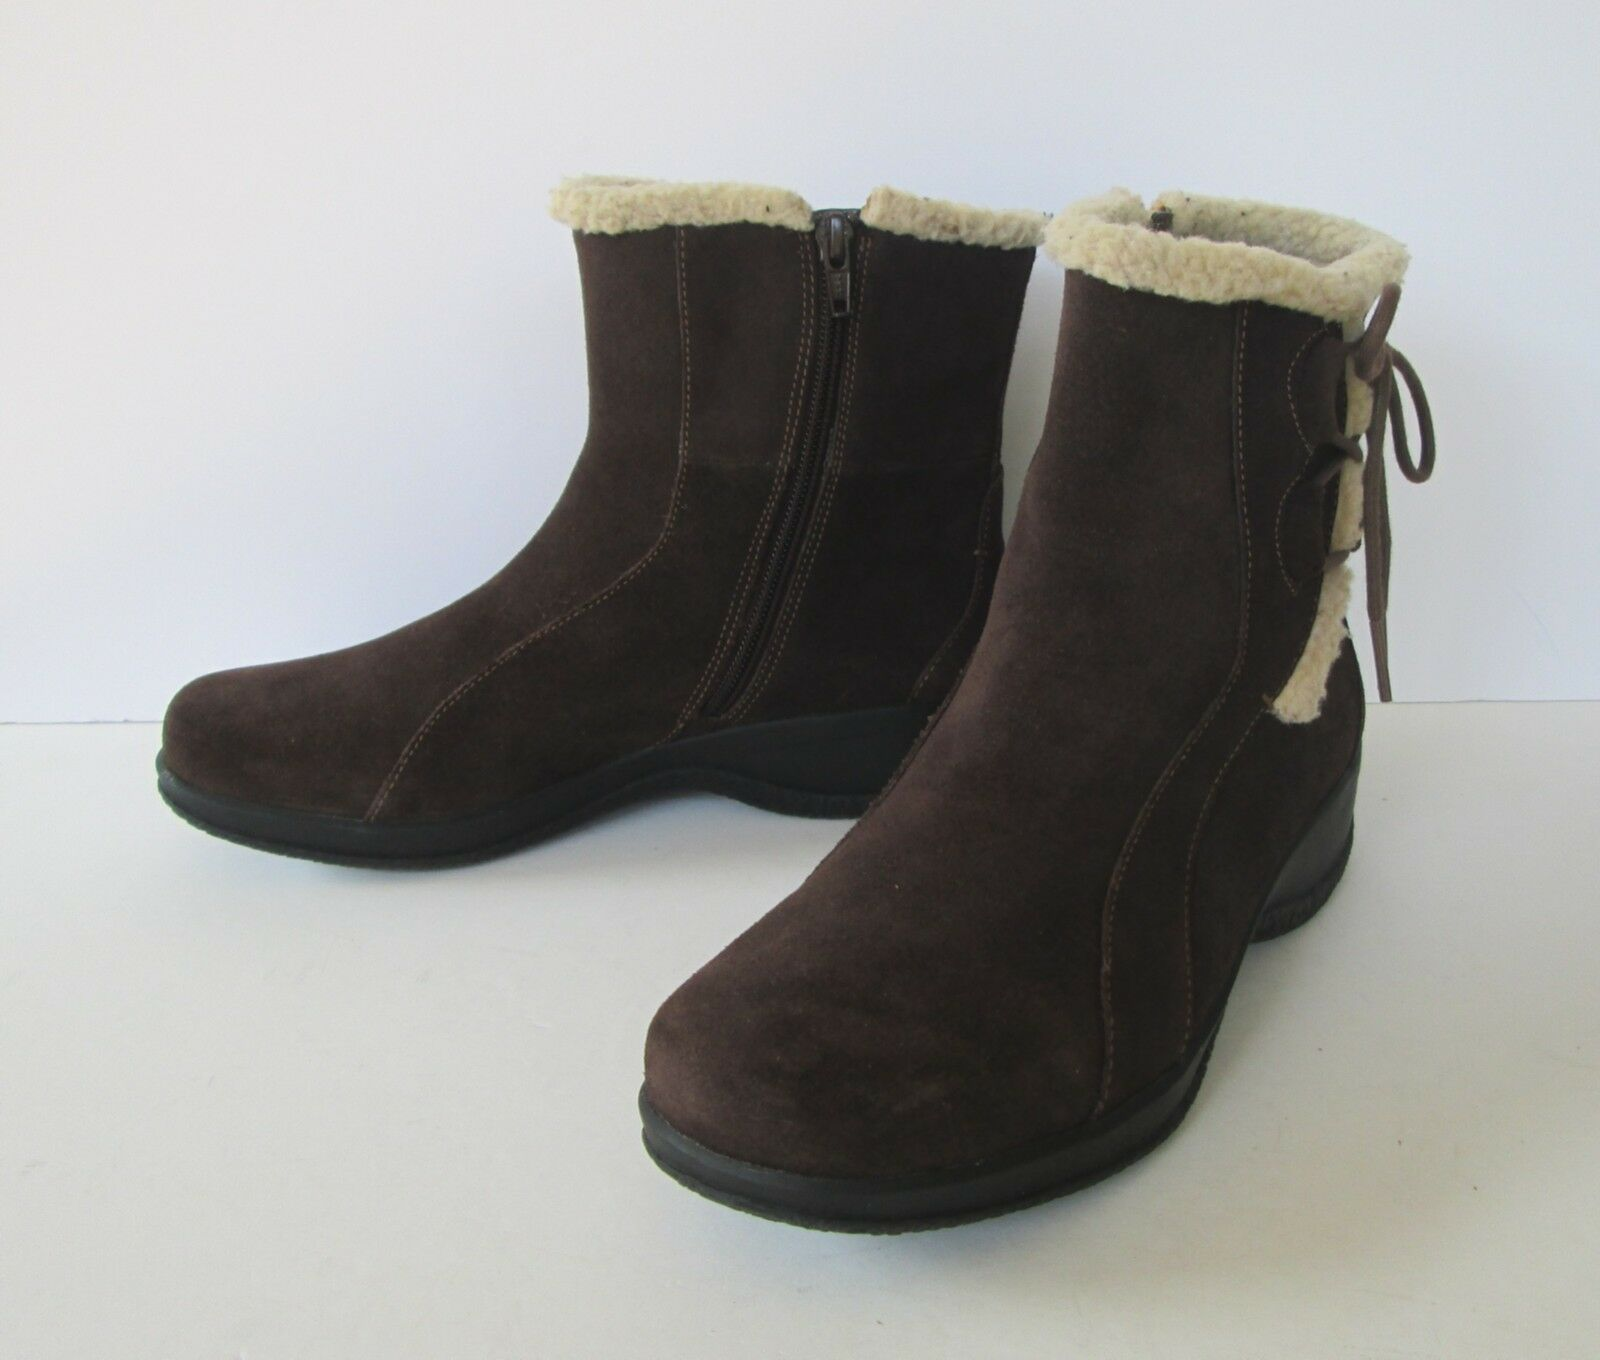 Clarks Womens Brown Suede Fleece Leather Fleece Suede Trim  Zip Up Ankle Boots 8 M 656caf